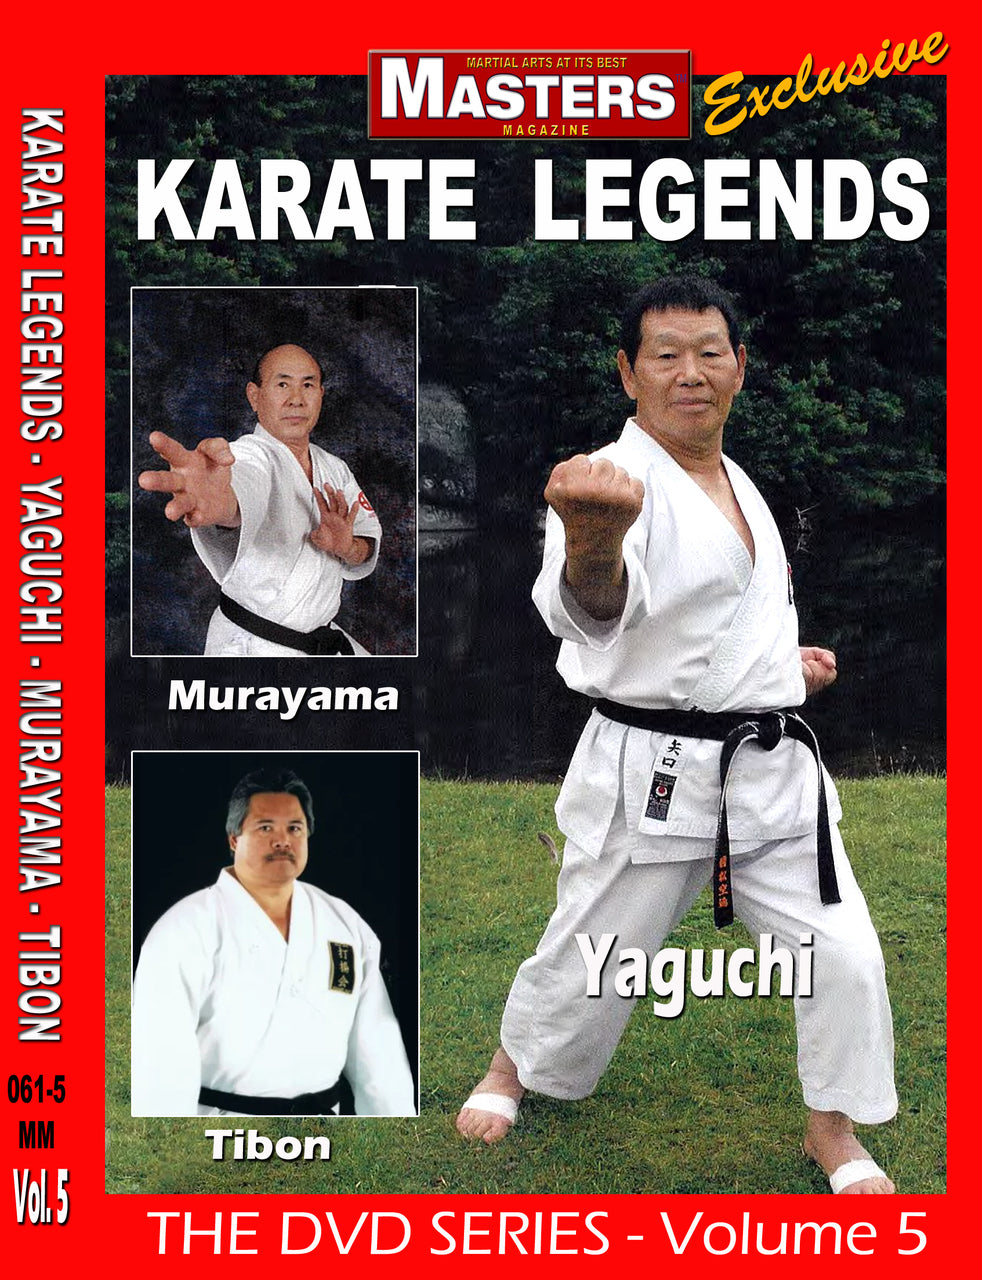 Karate Legends DVD 5 with Yaguchi, Murayama & Tibon